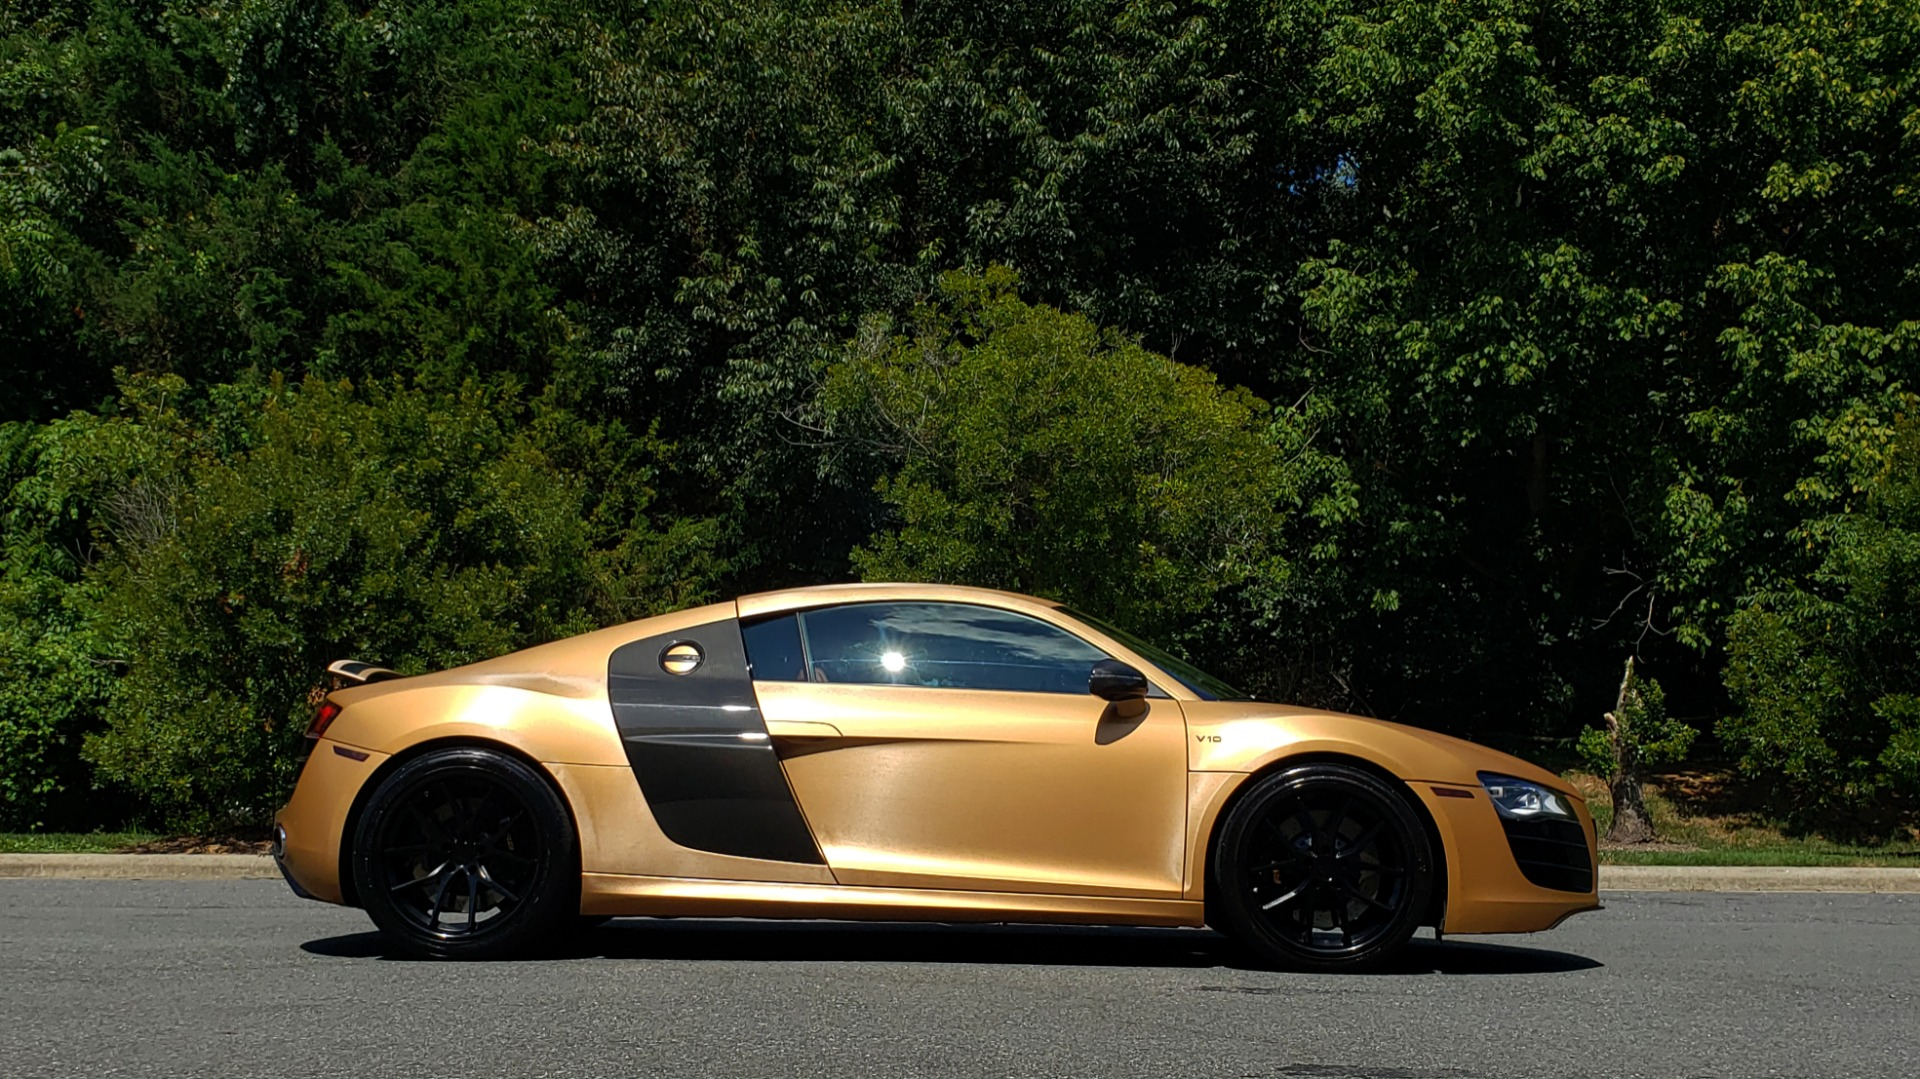 Used 2012 Audi R8 V10 5.2L / CUST WRAP BRUSHED BRONZE / NAV / B&O SOUND / CUST 19IN WHLS for sale $79,999 at Formula Imports in Charlotte NC 28227 9